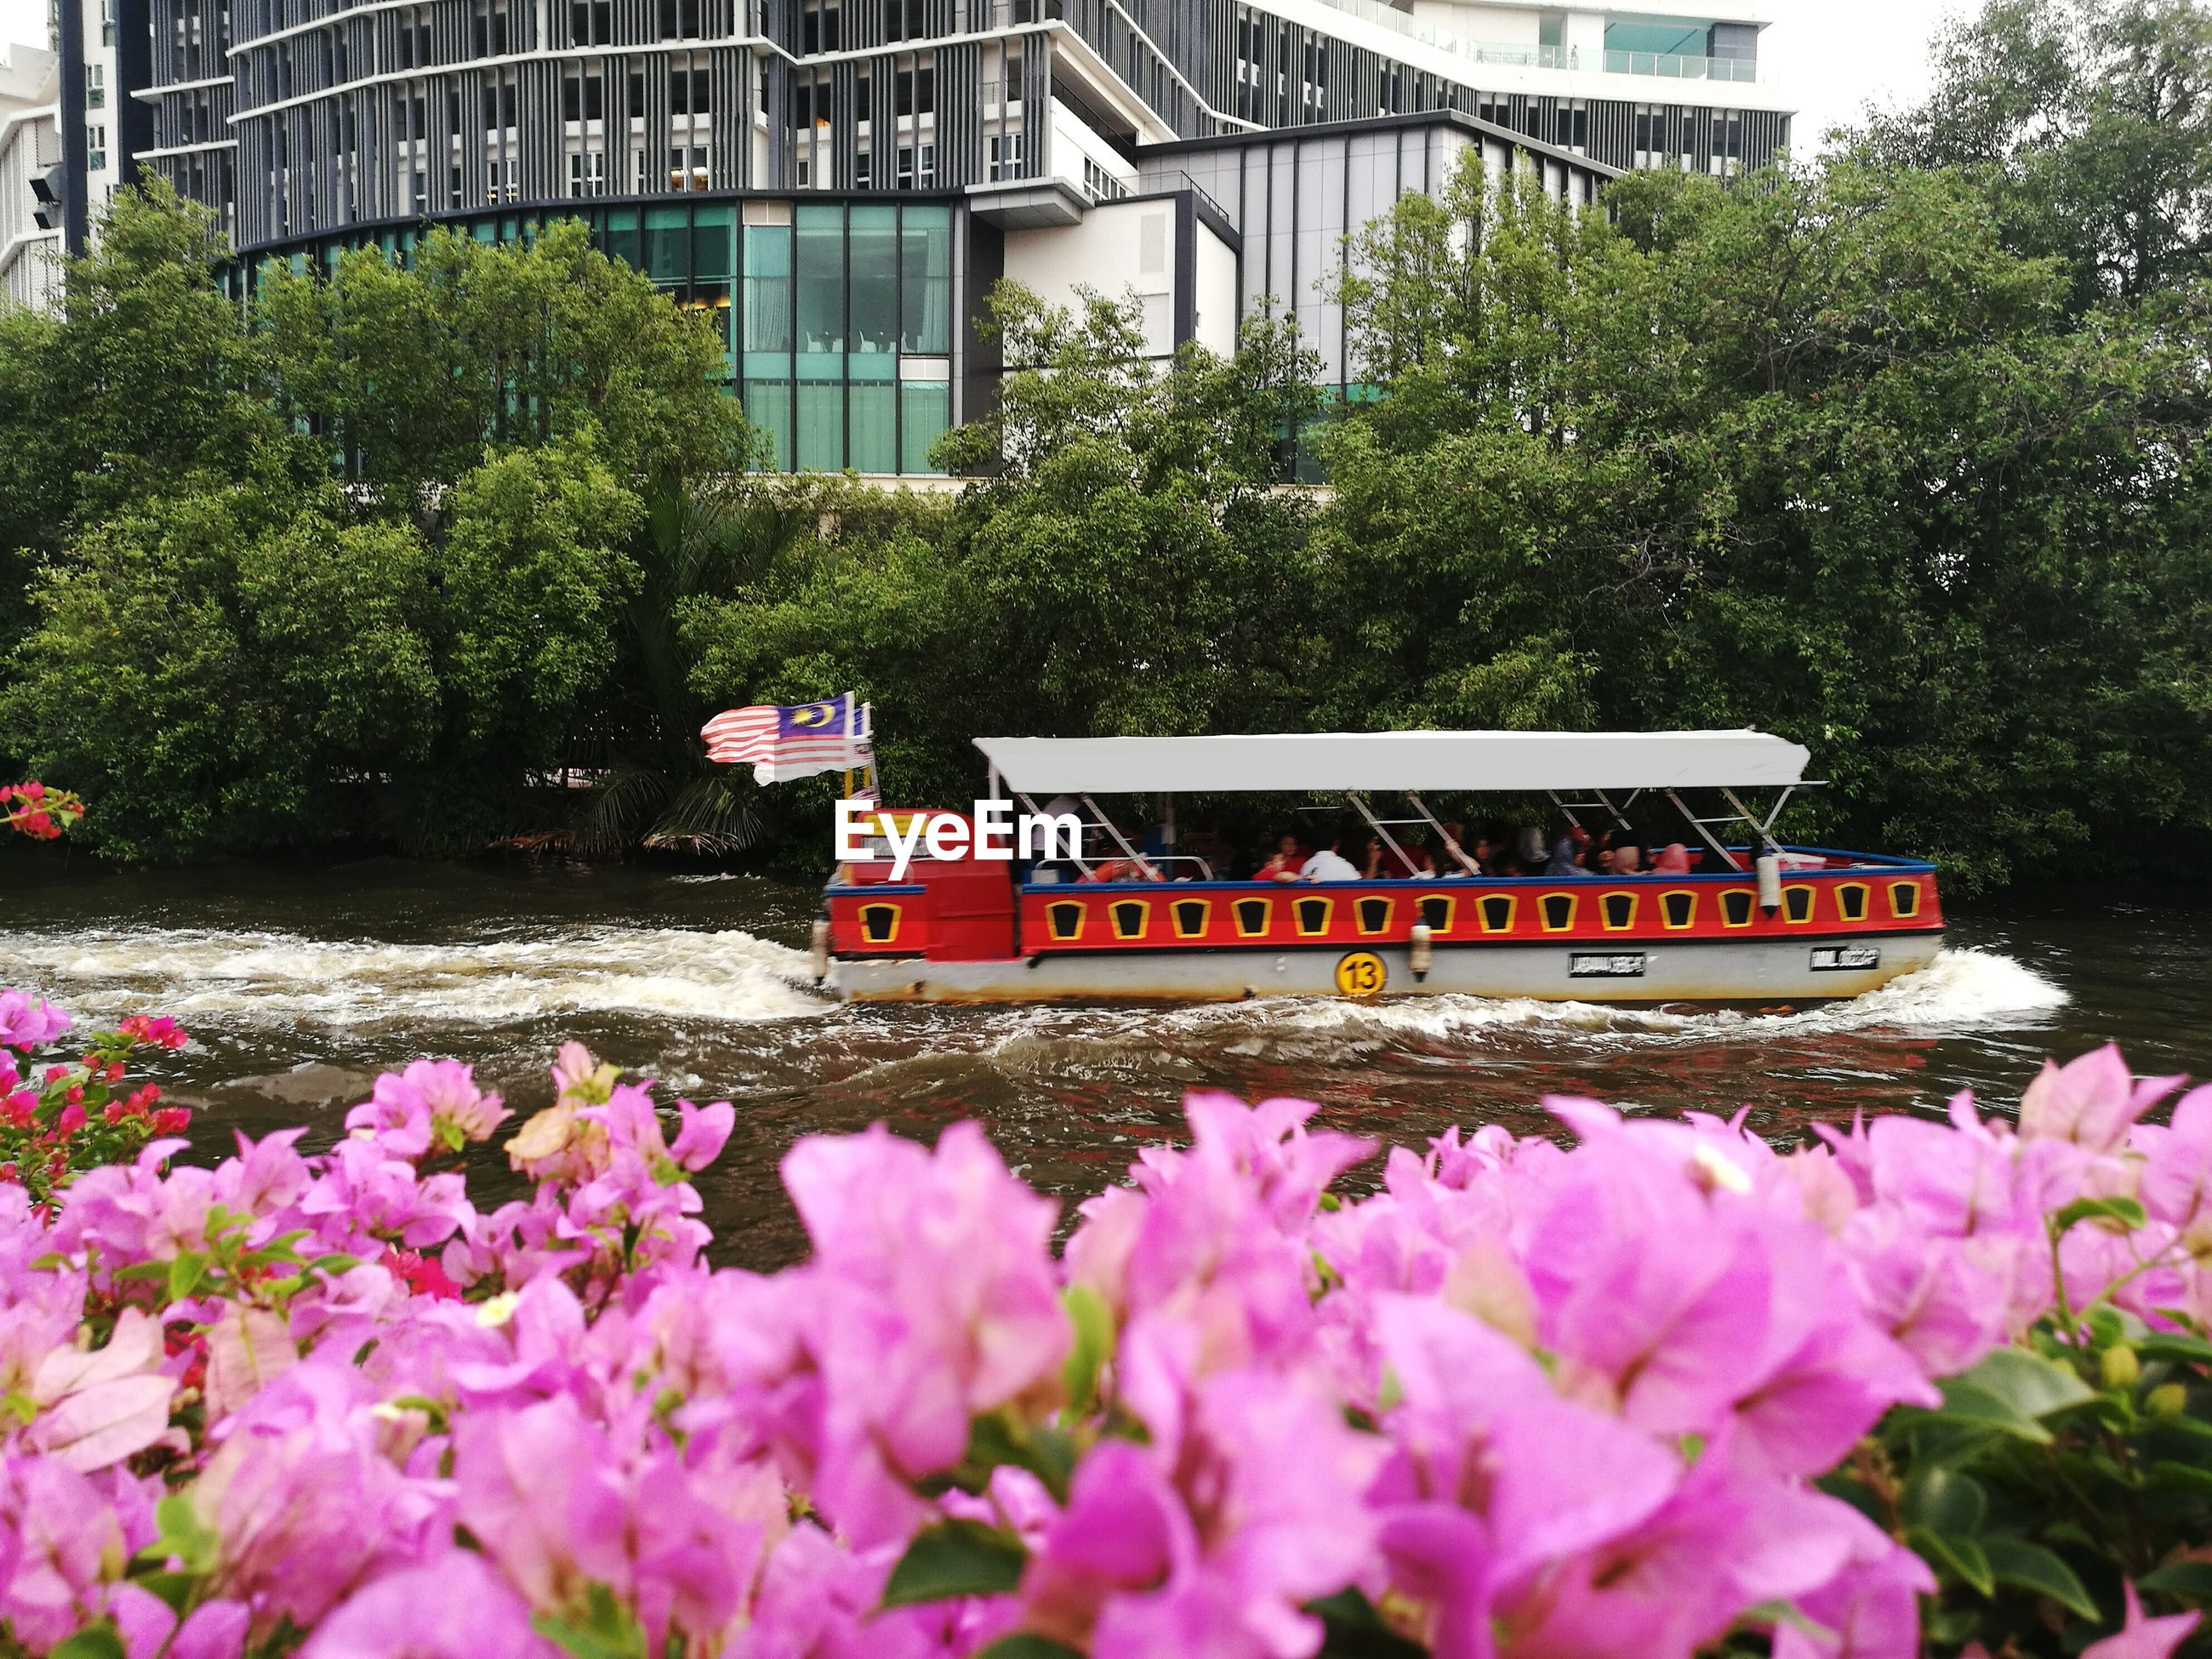 VIEW OF FLOWERS IN CITY